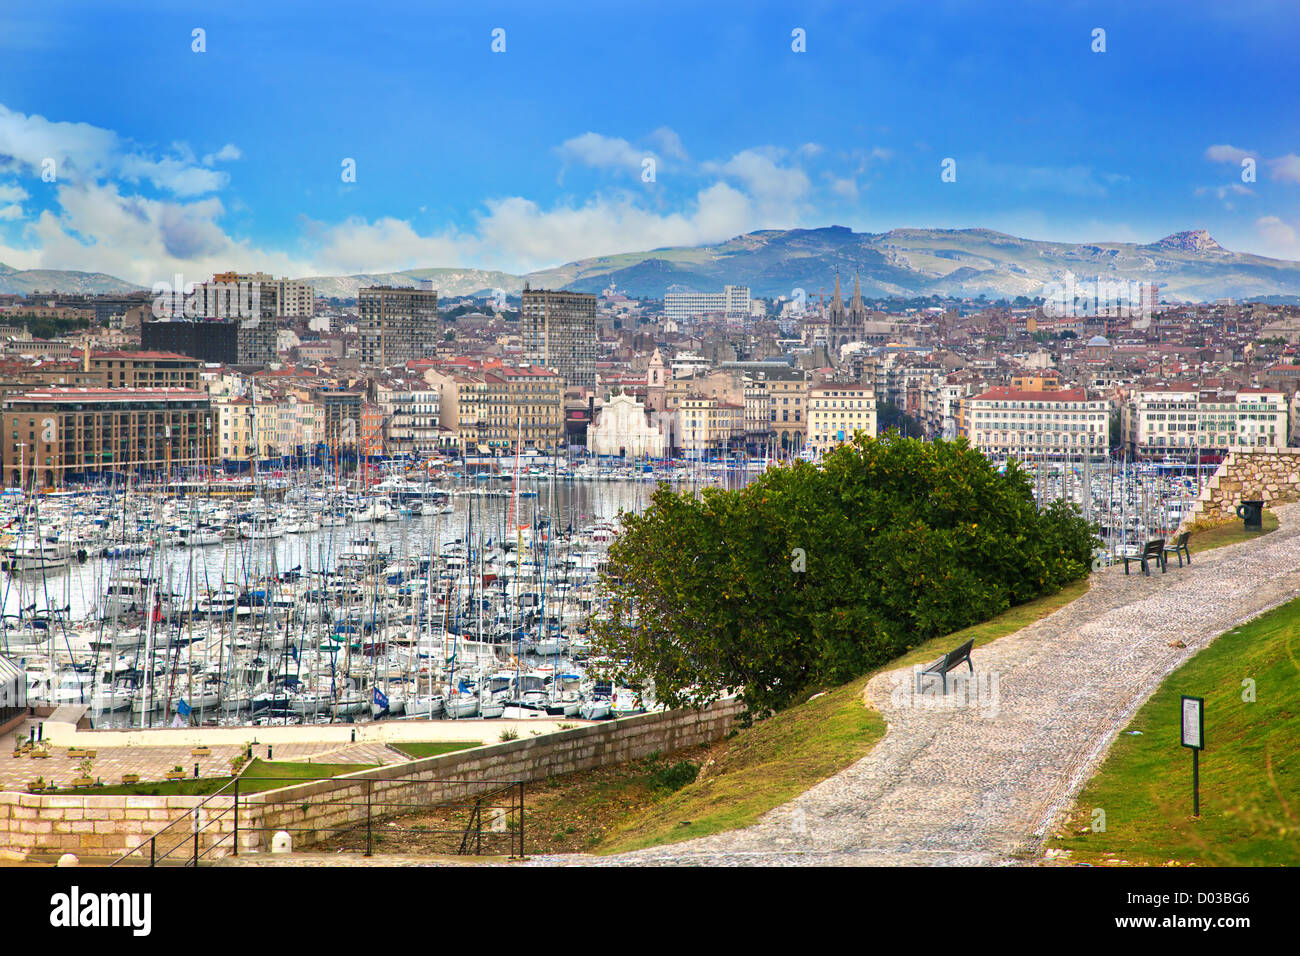 Marseille, France with the Old Port - Stock Image